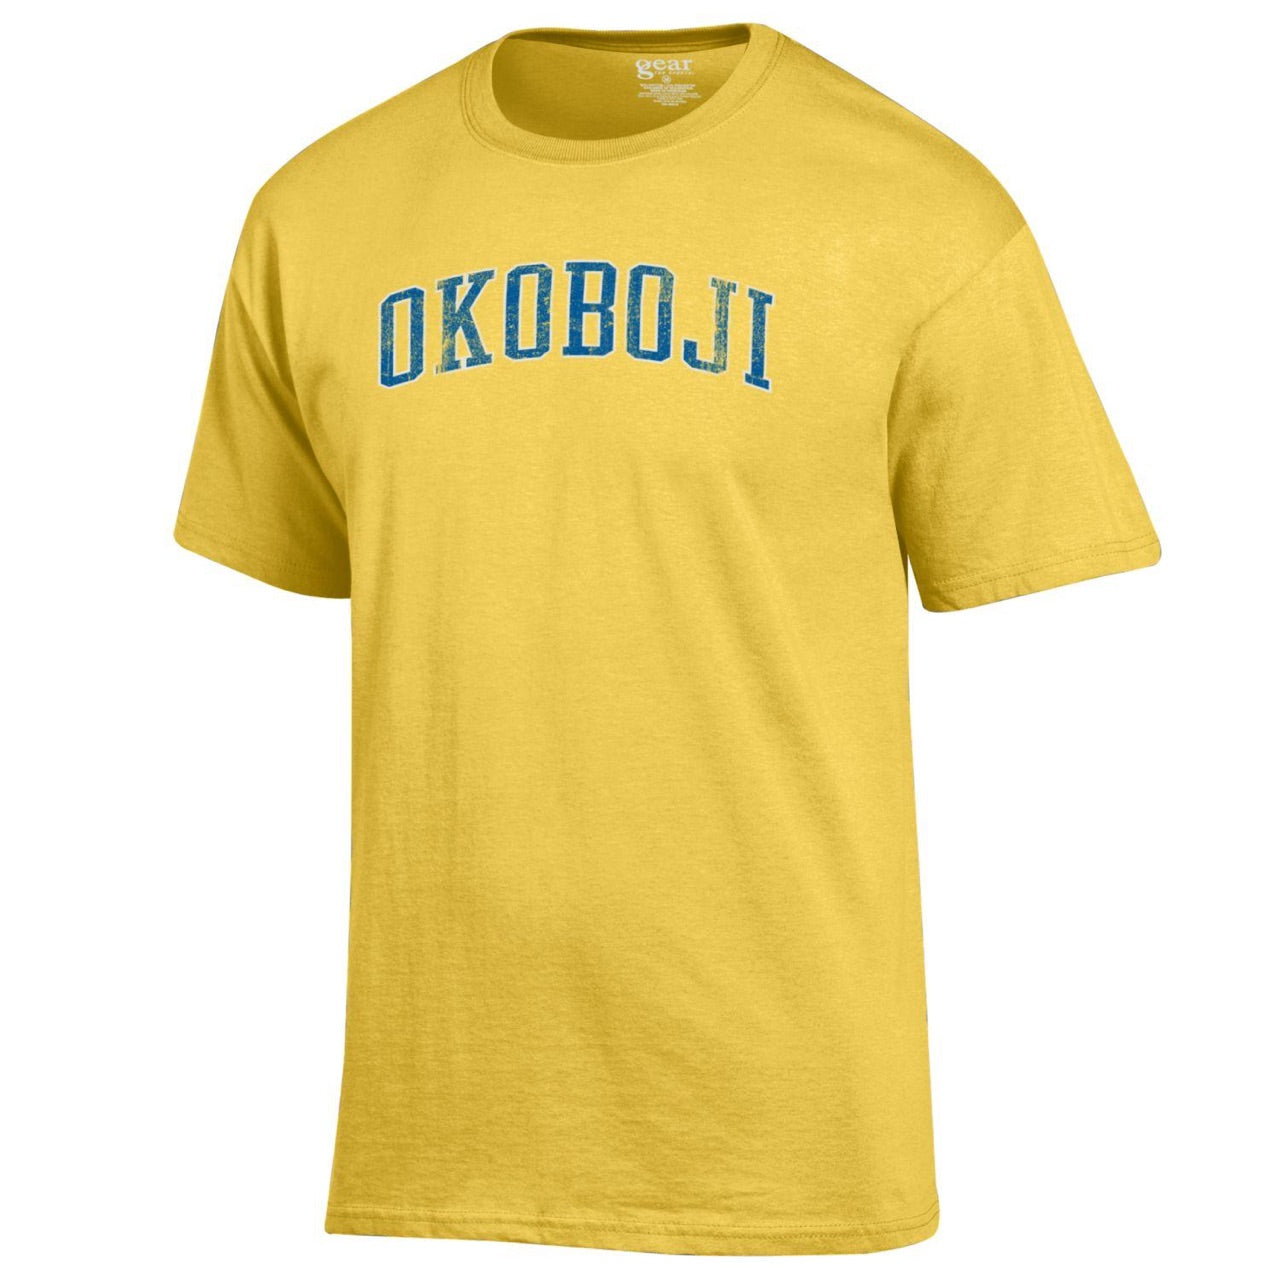 Okoboji Tee - Yellow